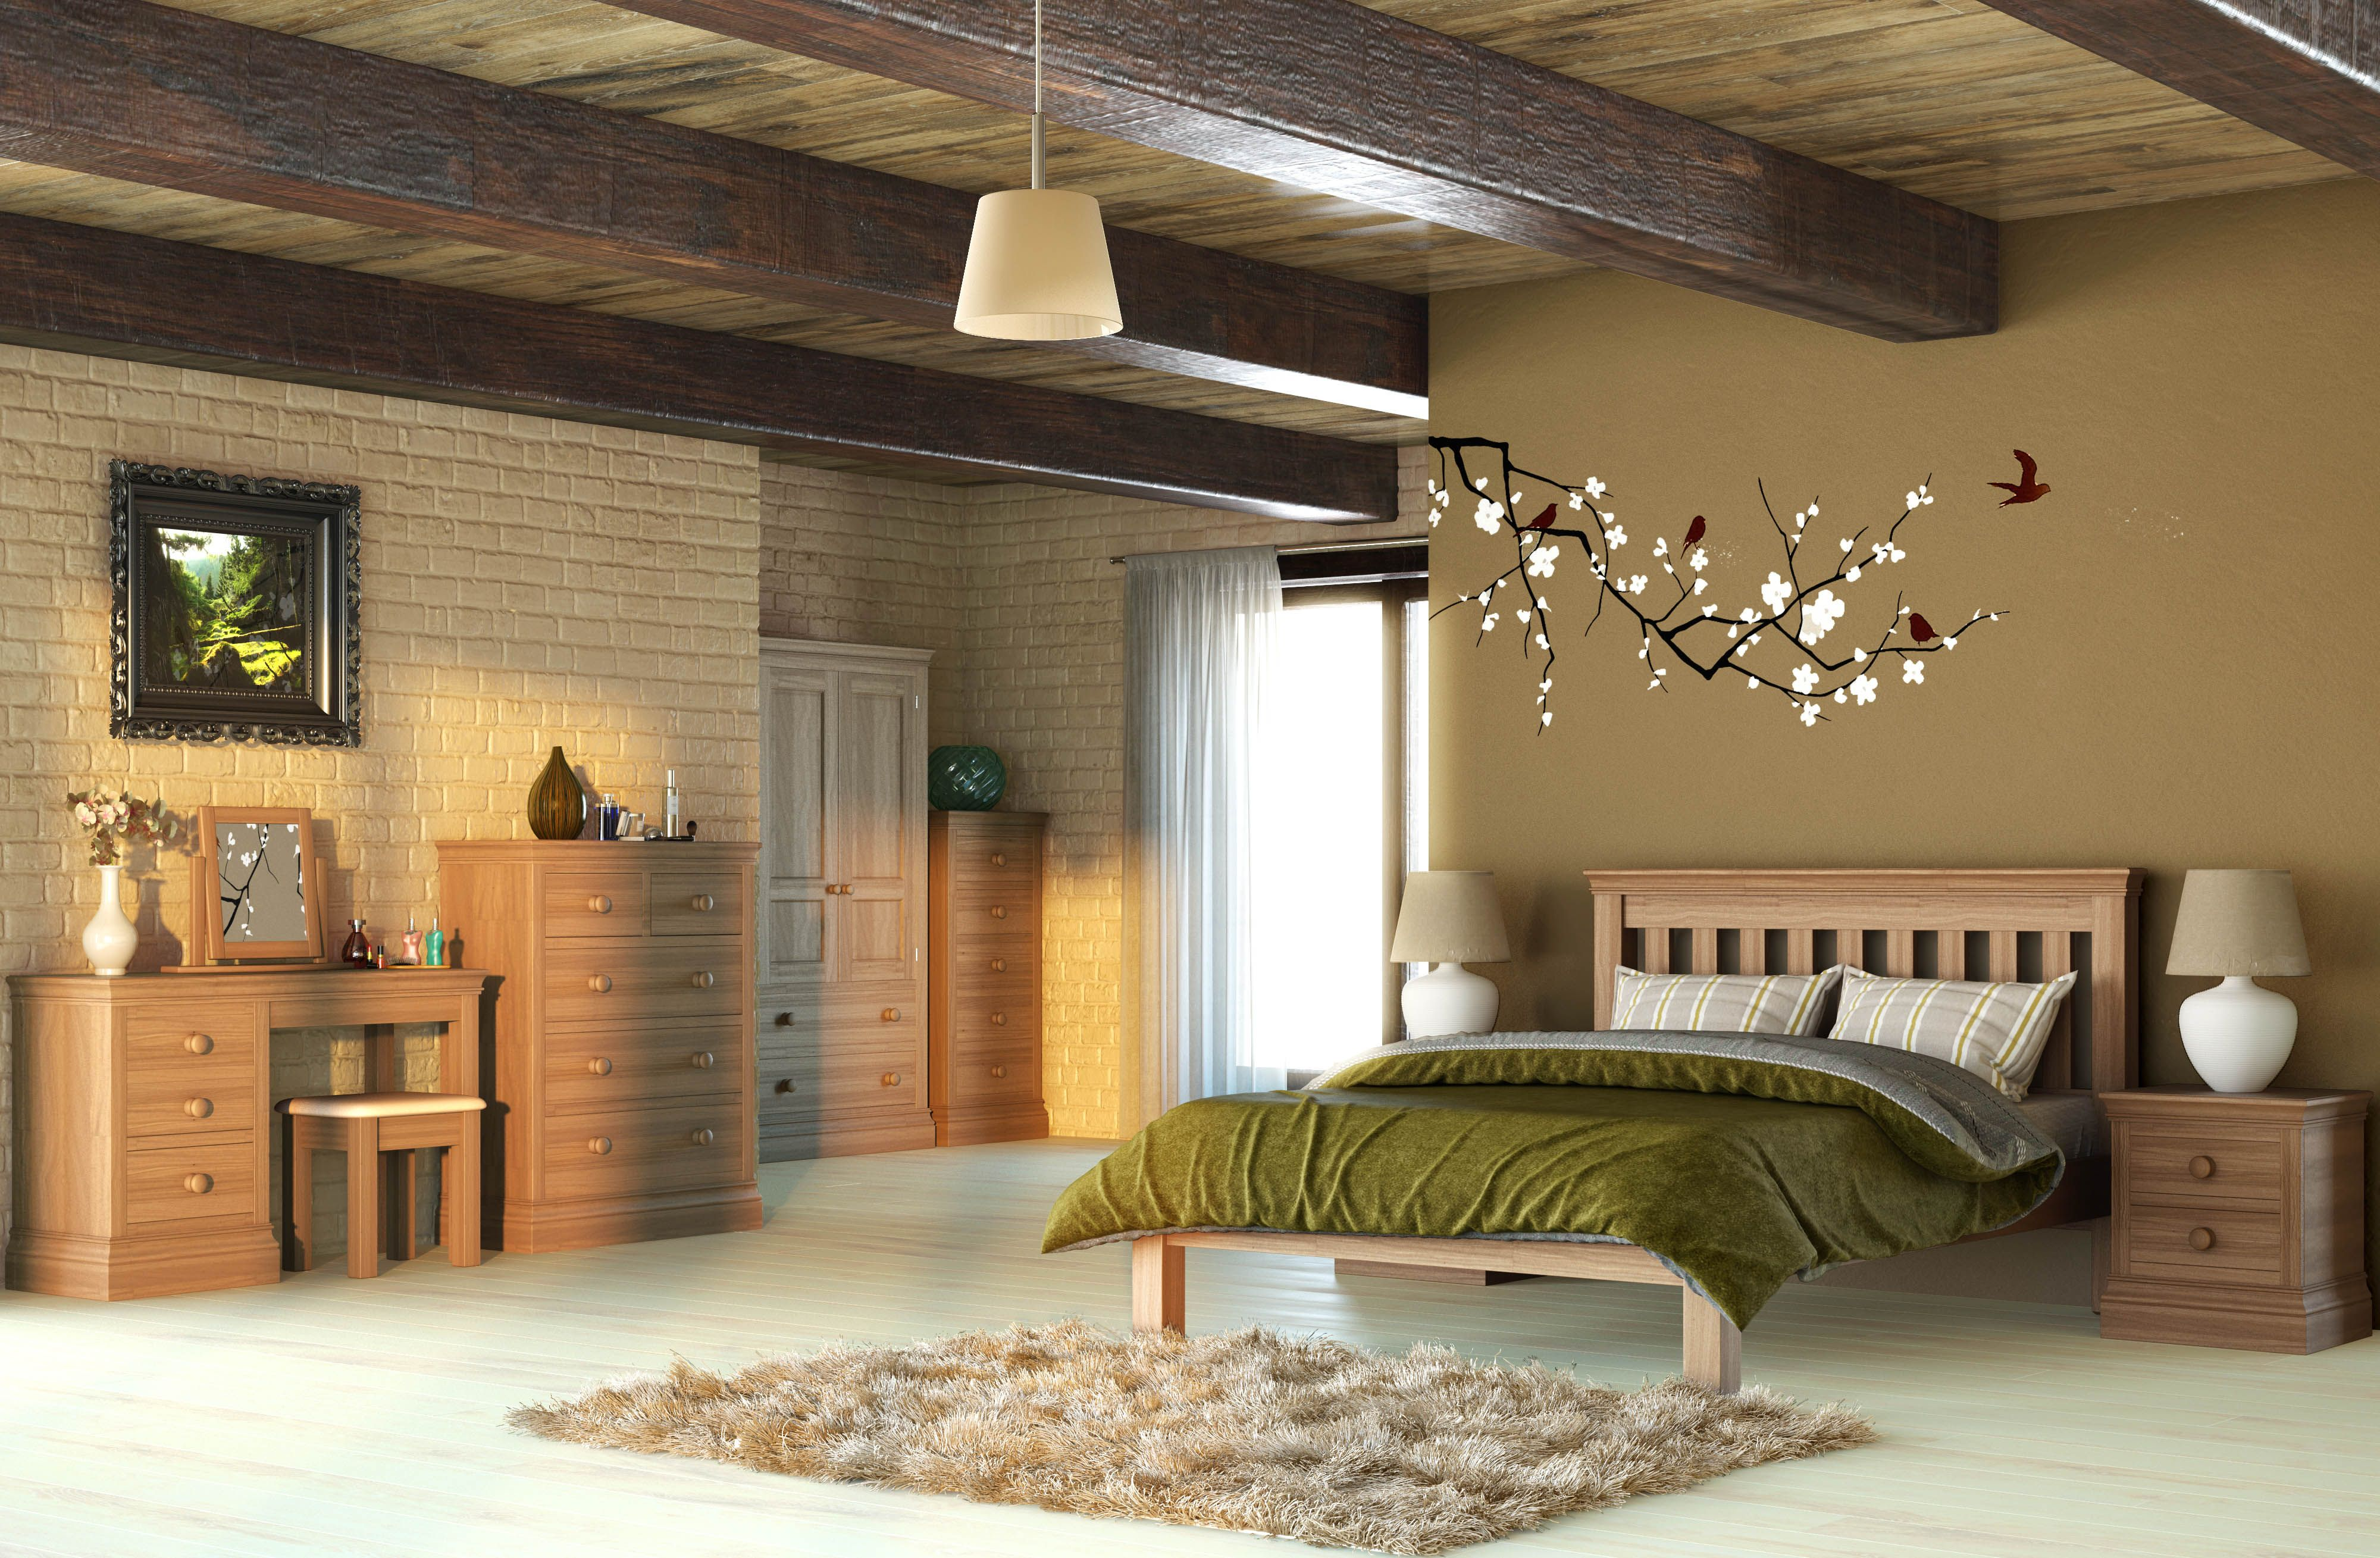 This is our new UK manufactured Oak bedroom collection